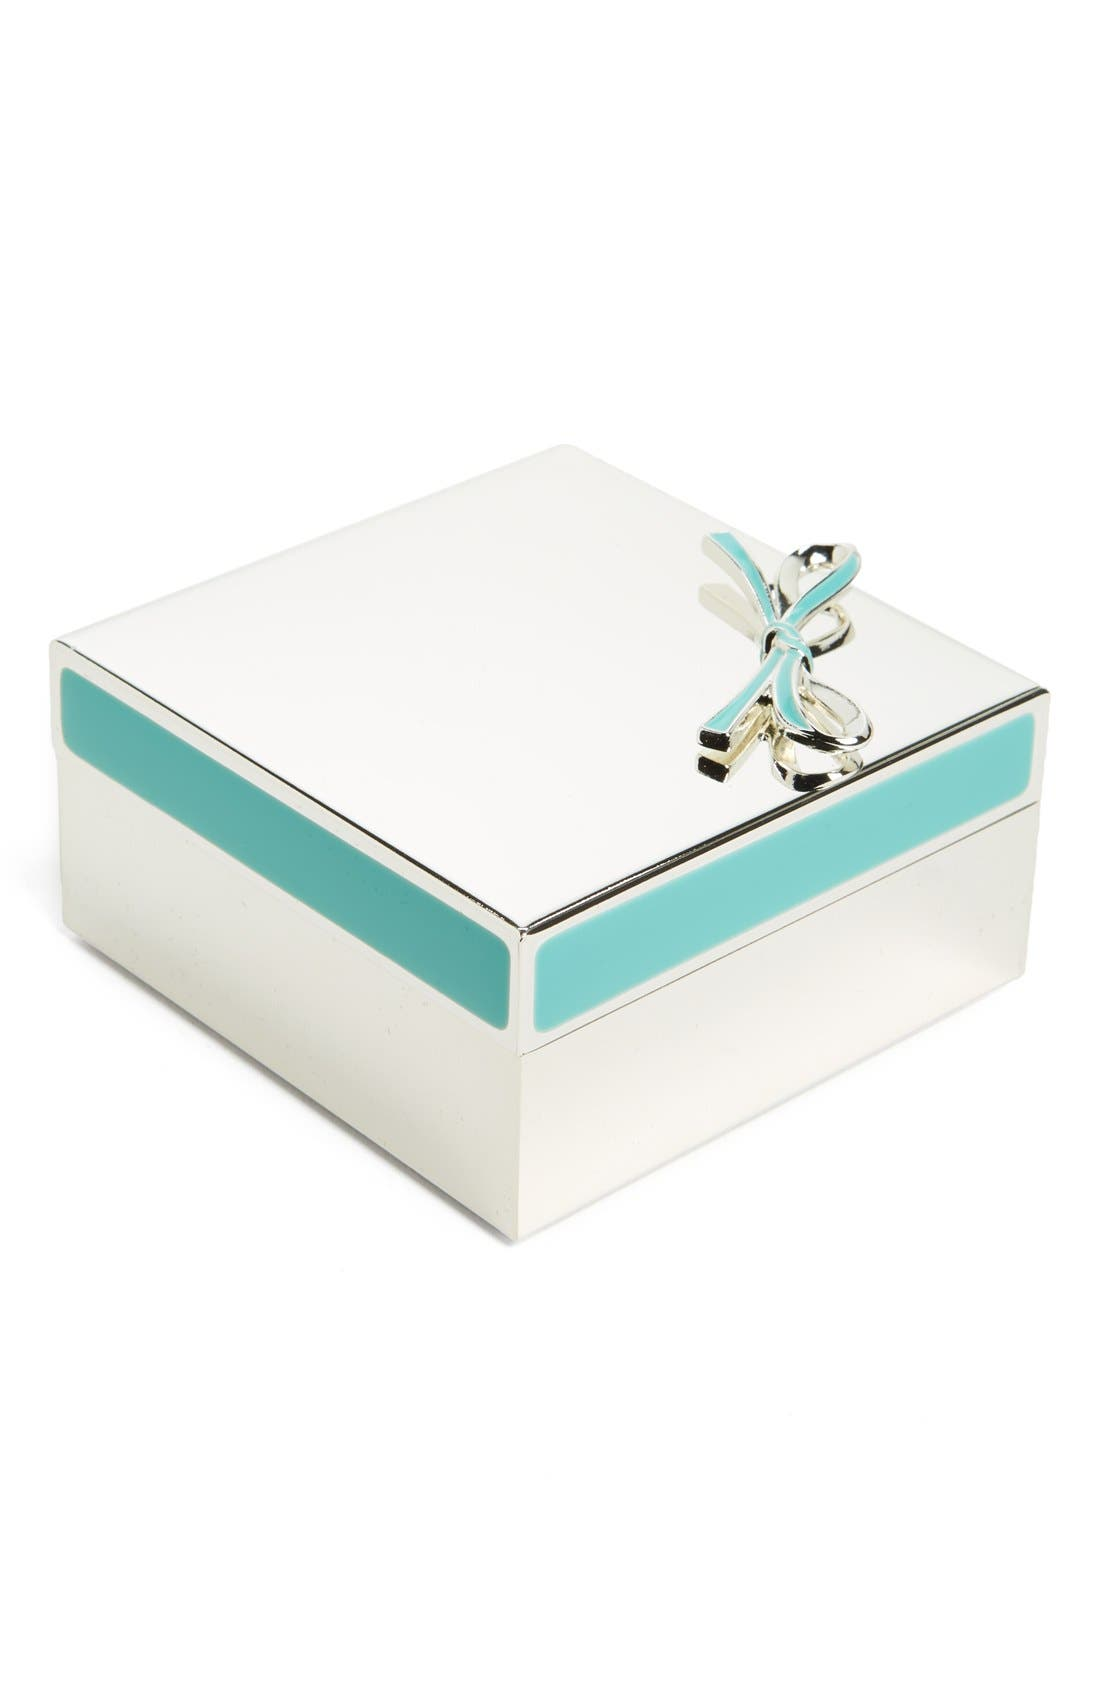 'vienna lane' keepsake box,                             Main thumbnail 1, color,                             Turquoise